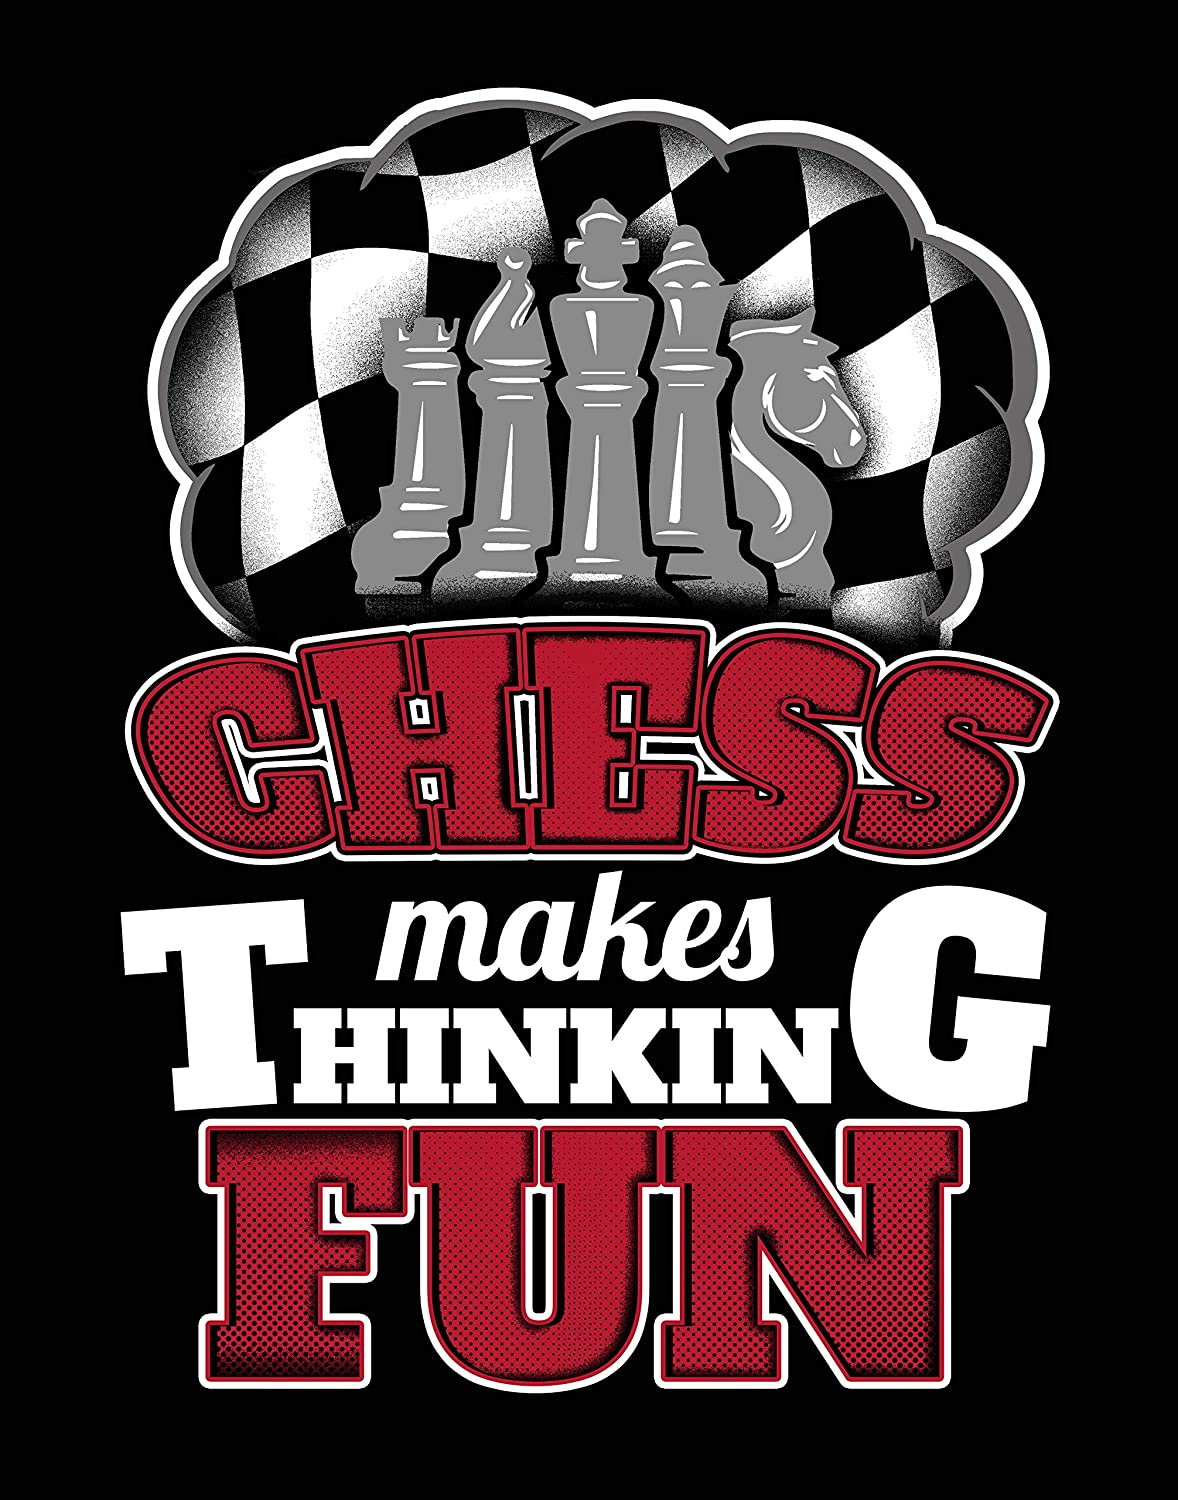 Ramini Brands Chess Makes Thinking Fun - Wall Artwork - 11 x 14 Unframed Print - Great Gift for Checkmates and Chess Players - Playroom, Game Room, Mancave or Home Office Decor